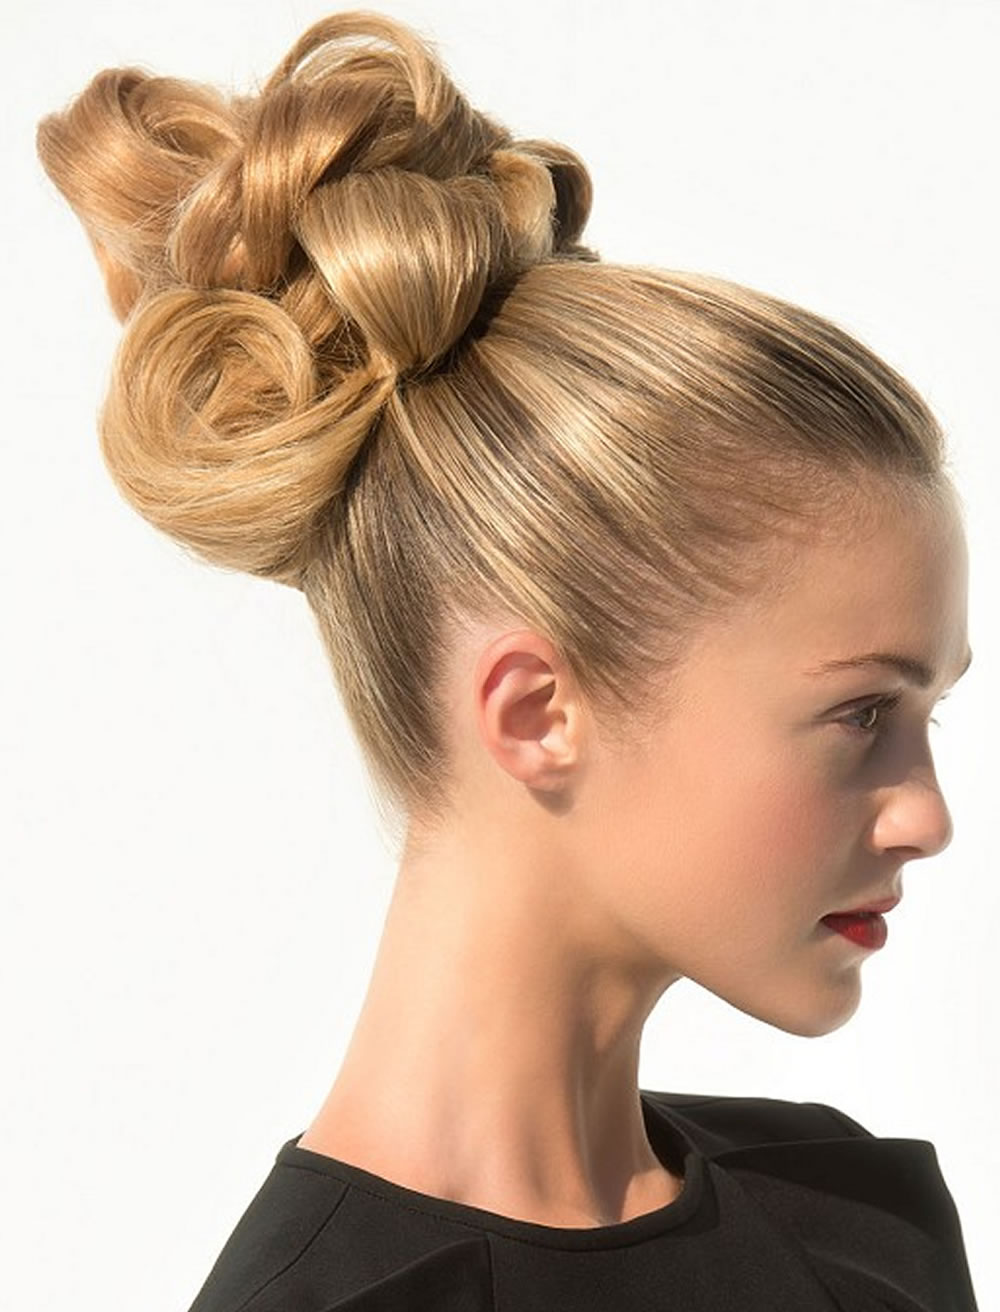 Updo Hairstyles For Round, Square Oval Faces 2018 - 2019